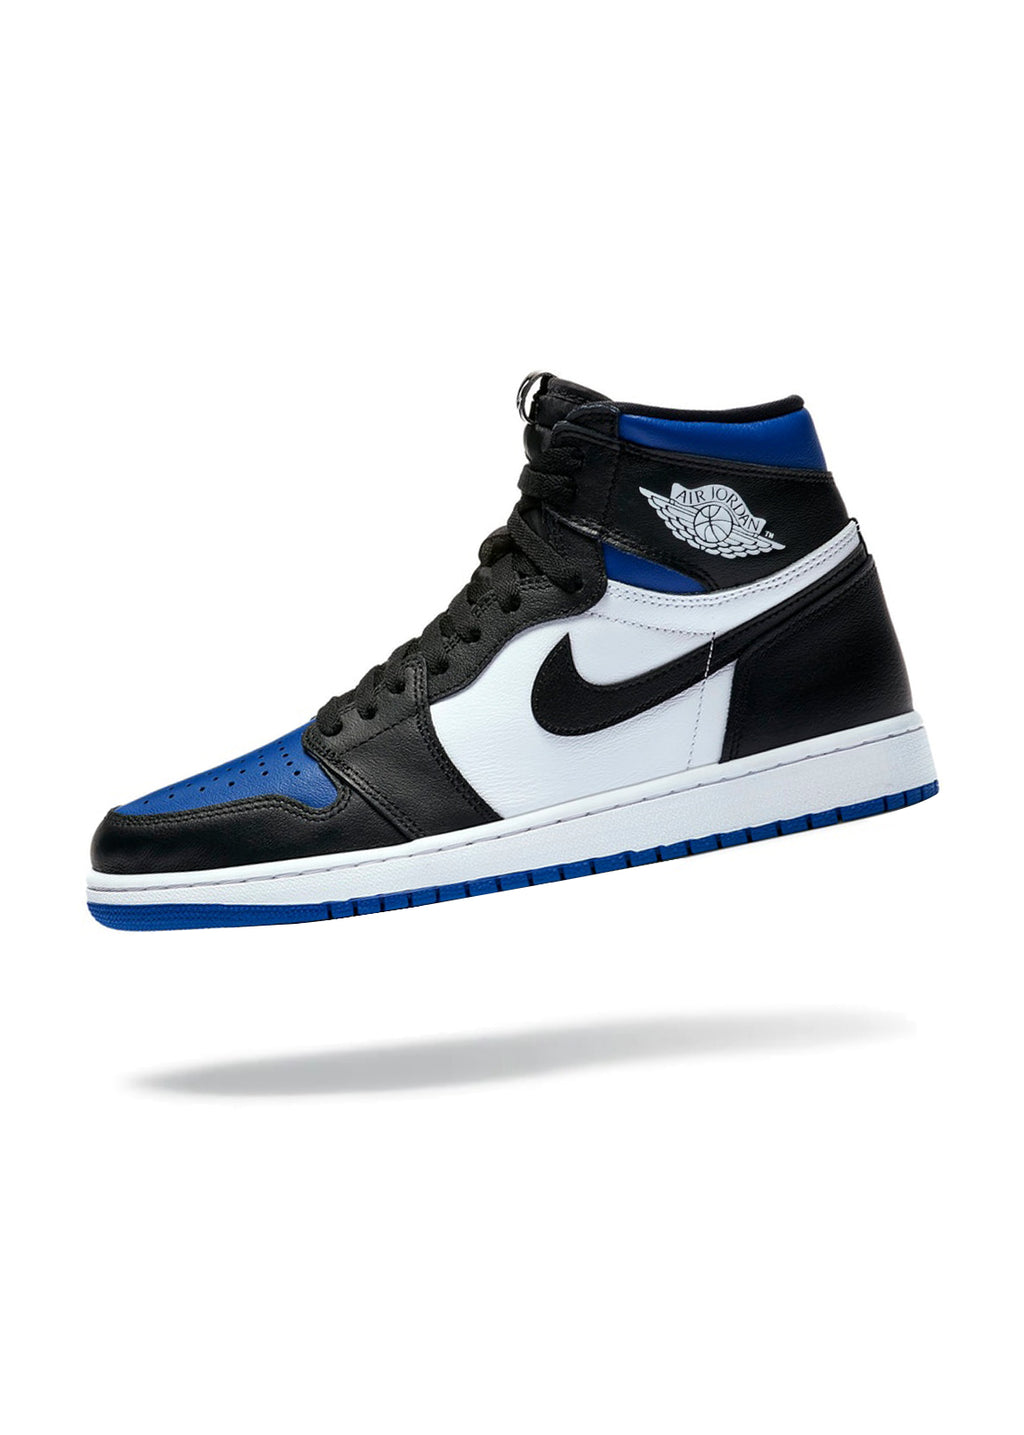 Jordan 1 high Royal Toe